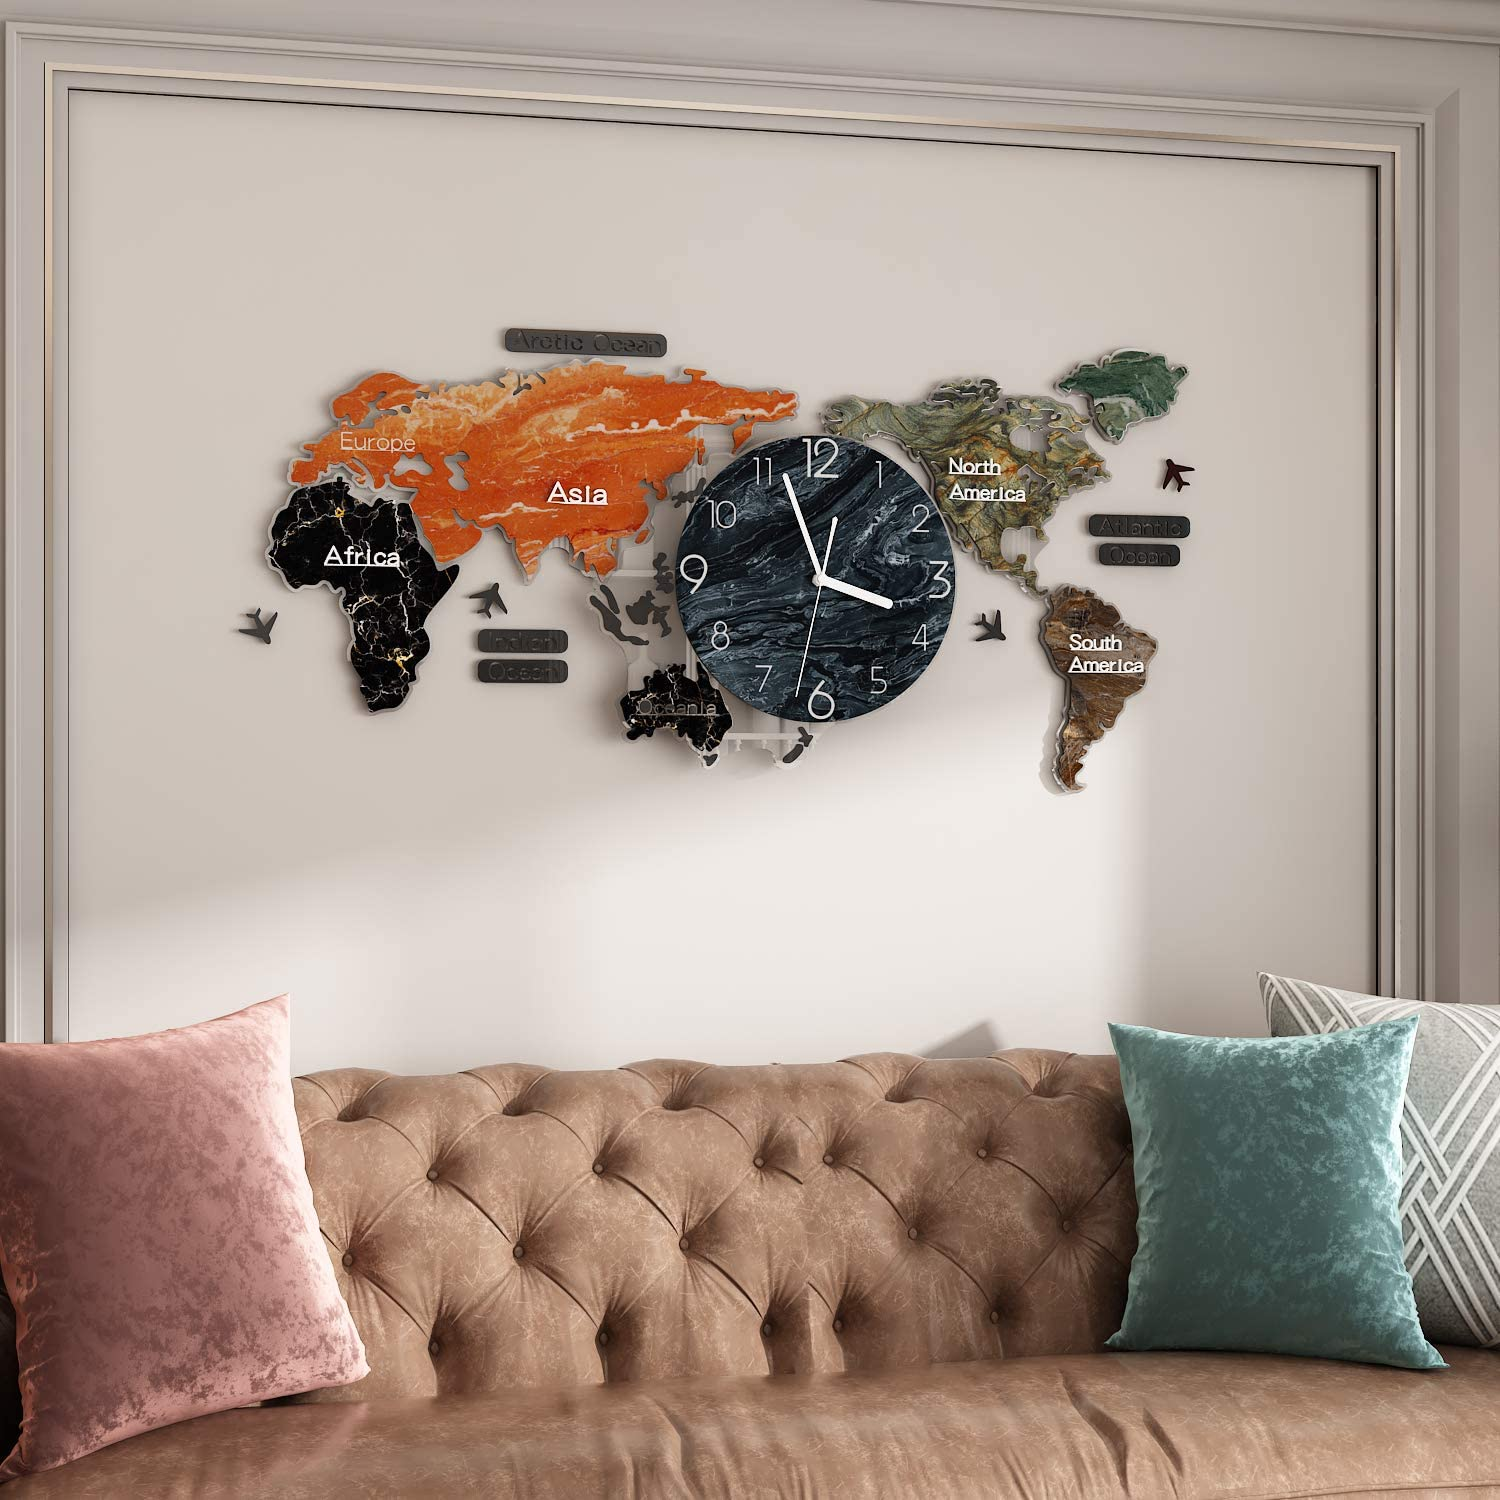 MEISD Decorative Wall Clocks for Living Room Decor, Modern World Map Wall Clock, Silent Non Ticking Clock Battery Operated, Large 3D DIY Wall Clock for Kitchen Bedroom Office Bathroom Home